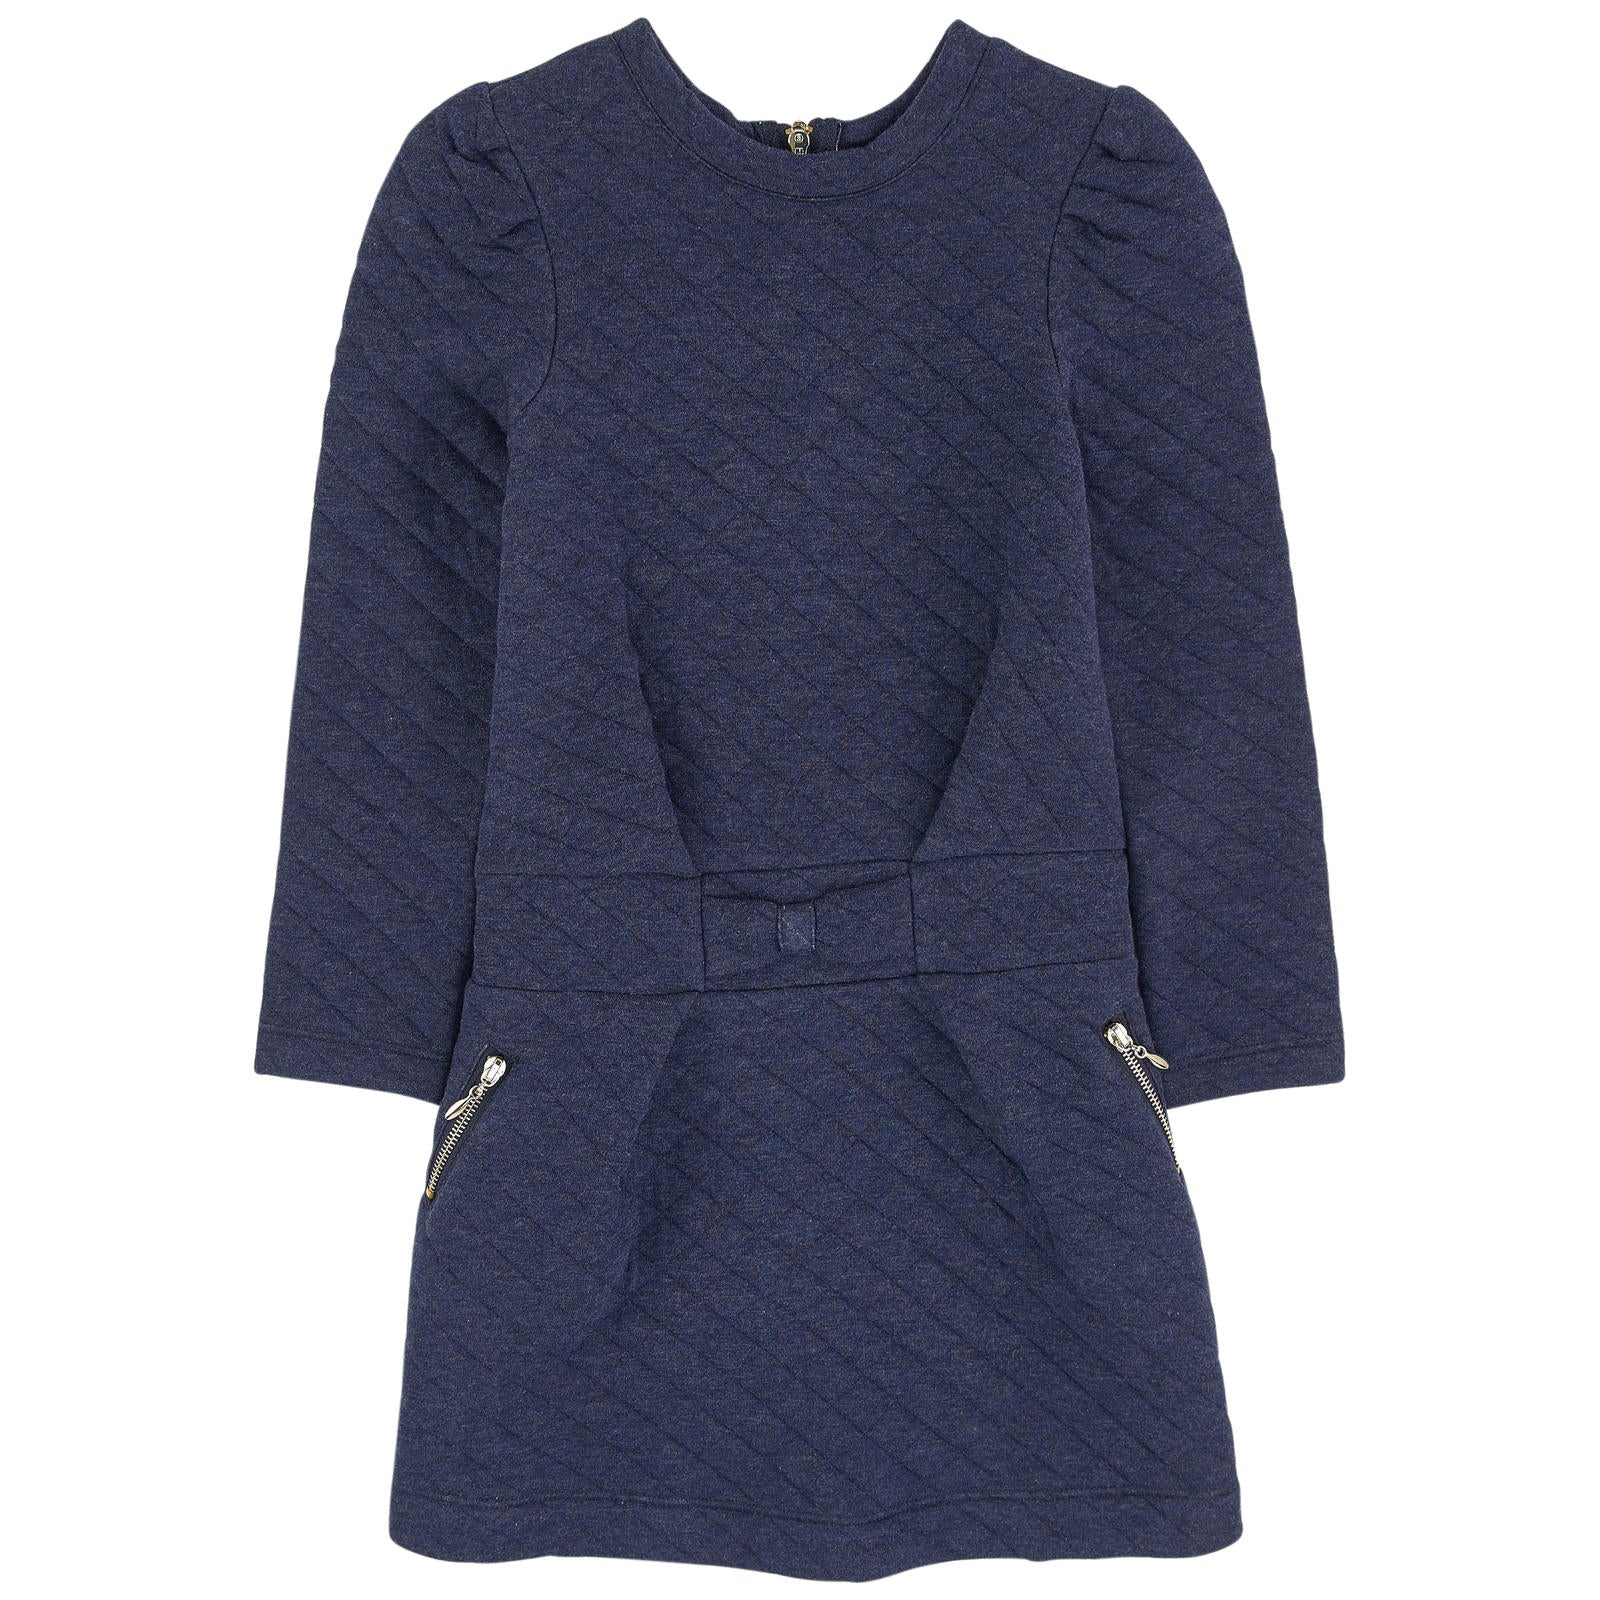 LILI GAUFRETTE L/S Quilted Dress